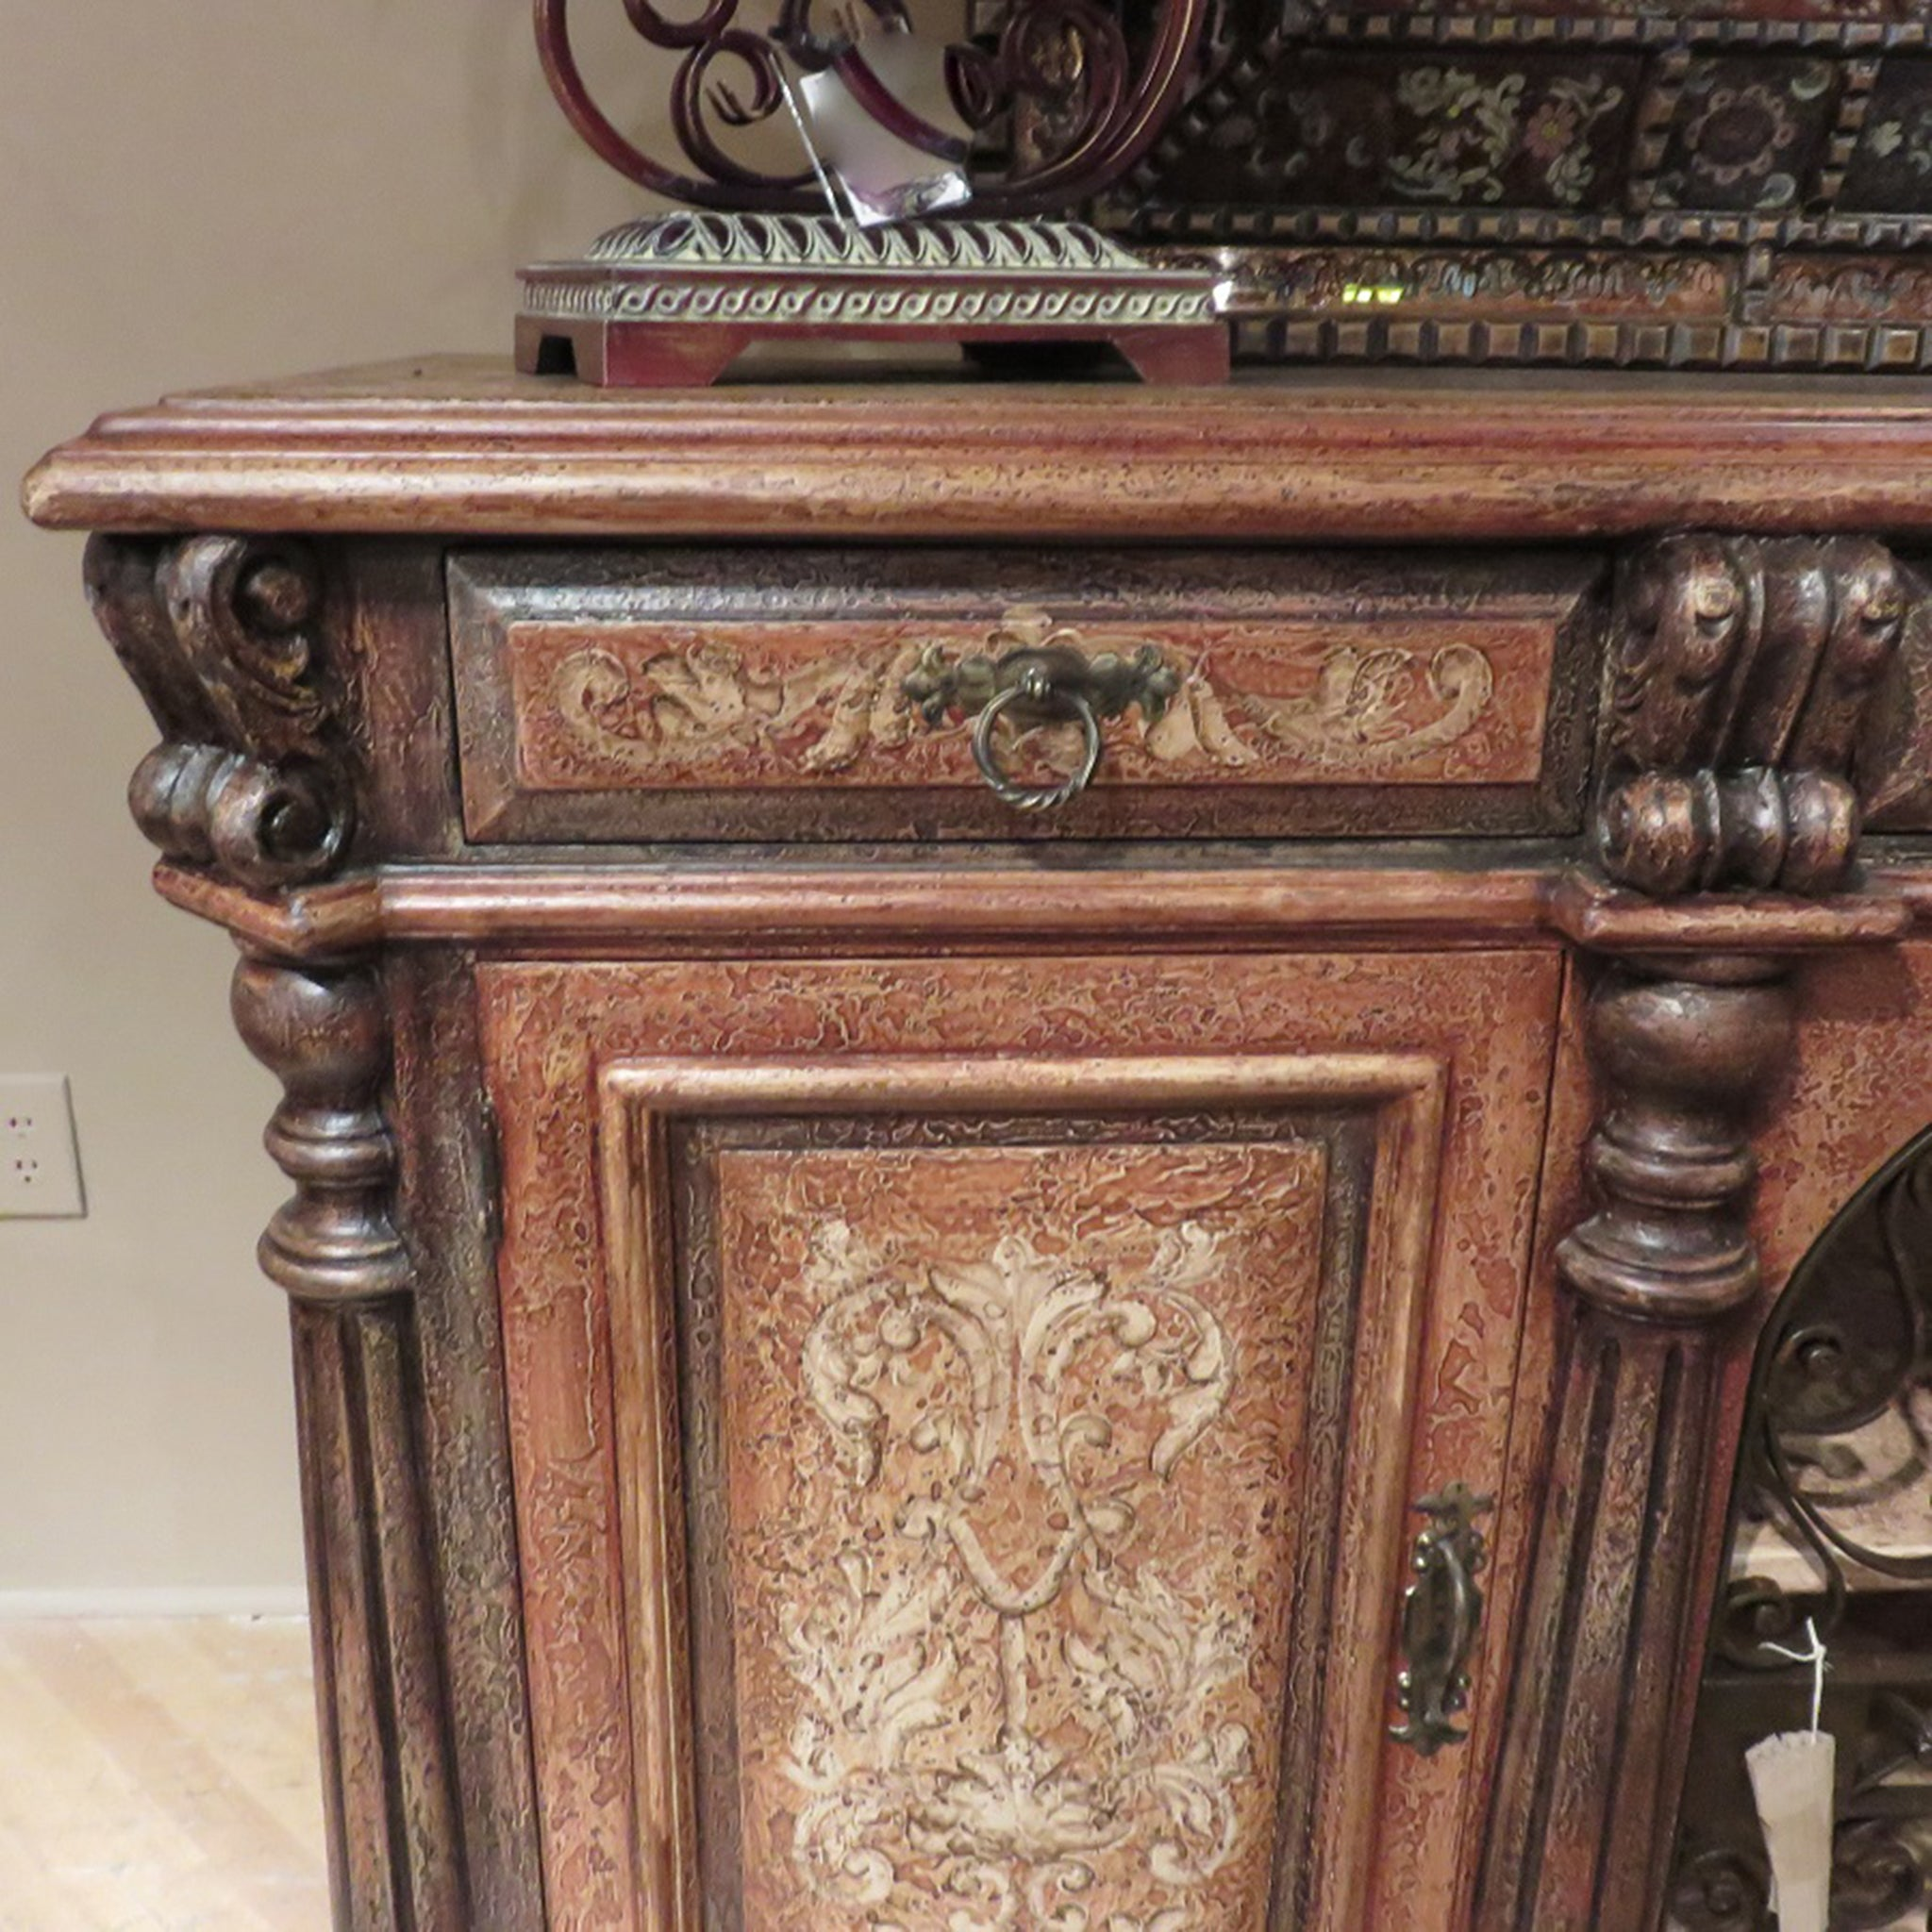 Olde World Hand Painted Rustic Iron Sideboard Buffet with Wrought Iron Scroll Doors